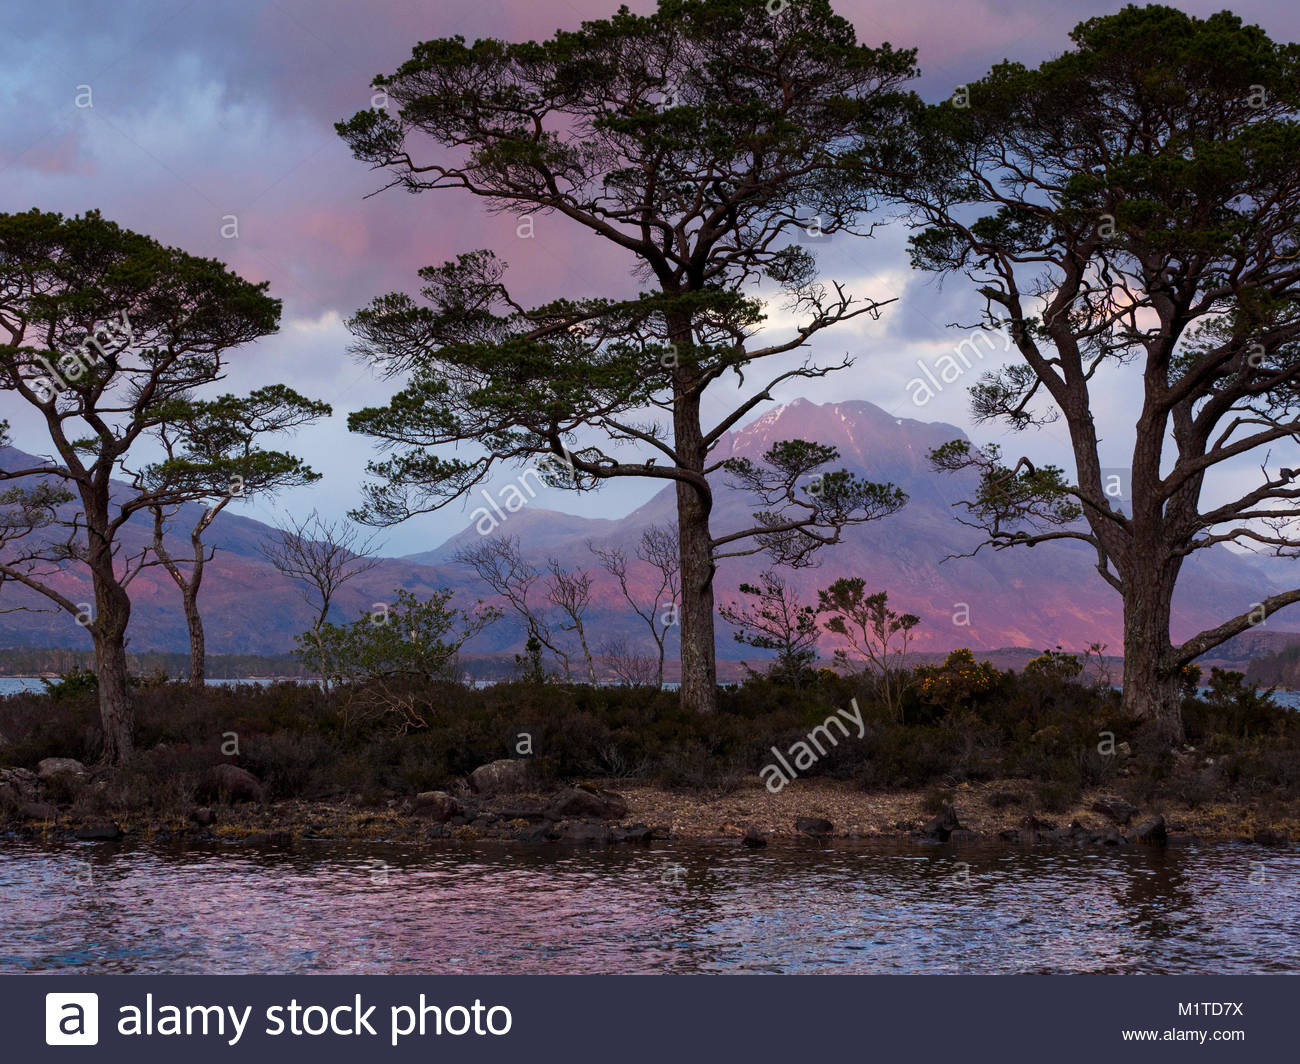 Loch Maree, Wester Ross, Scotland, United Kingdom. - Stock Image